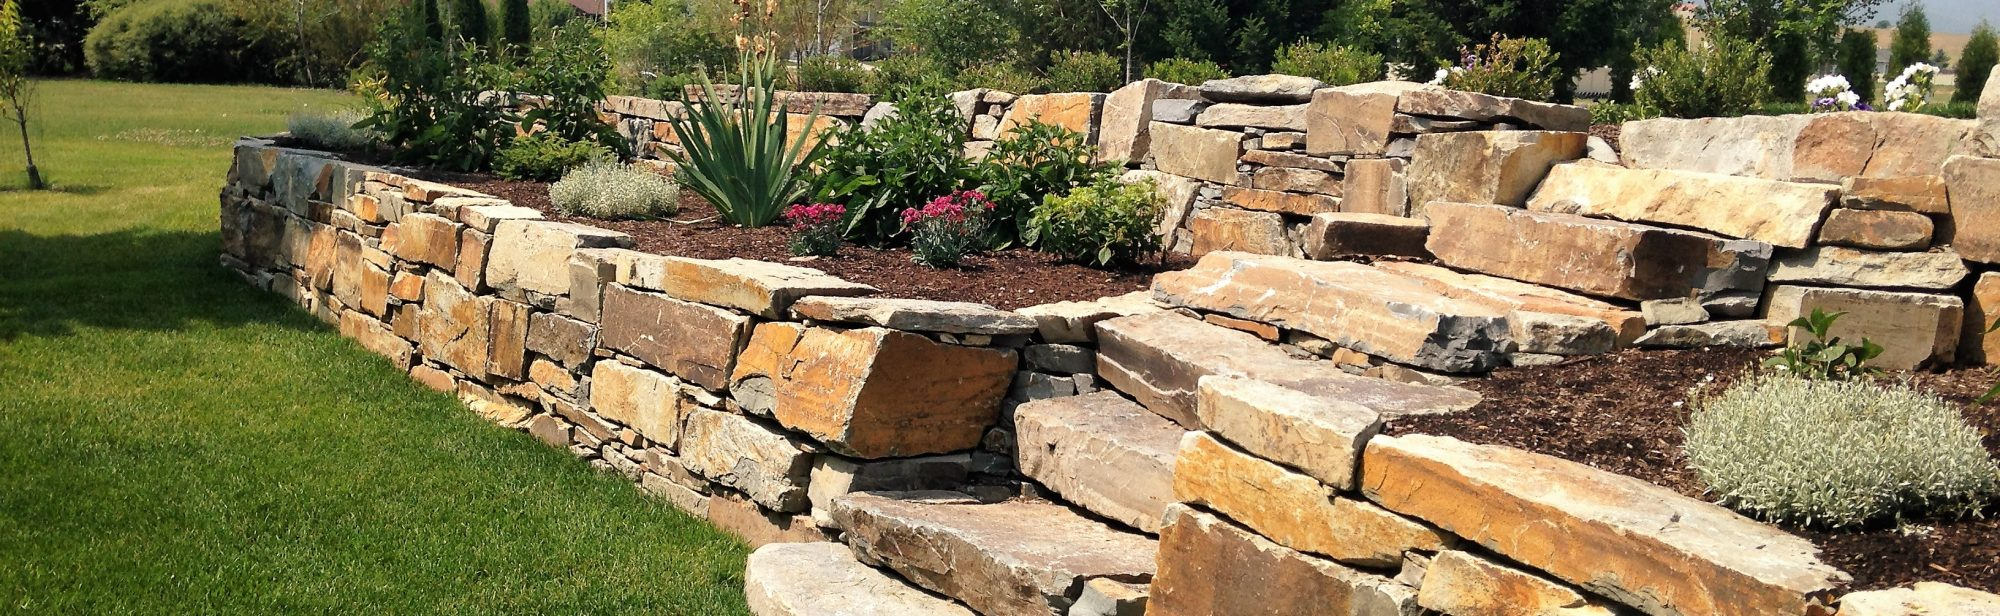 Biggy\'s Landscape, Inc. |